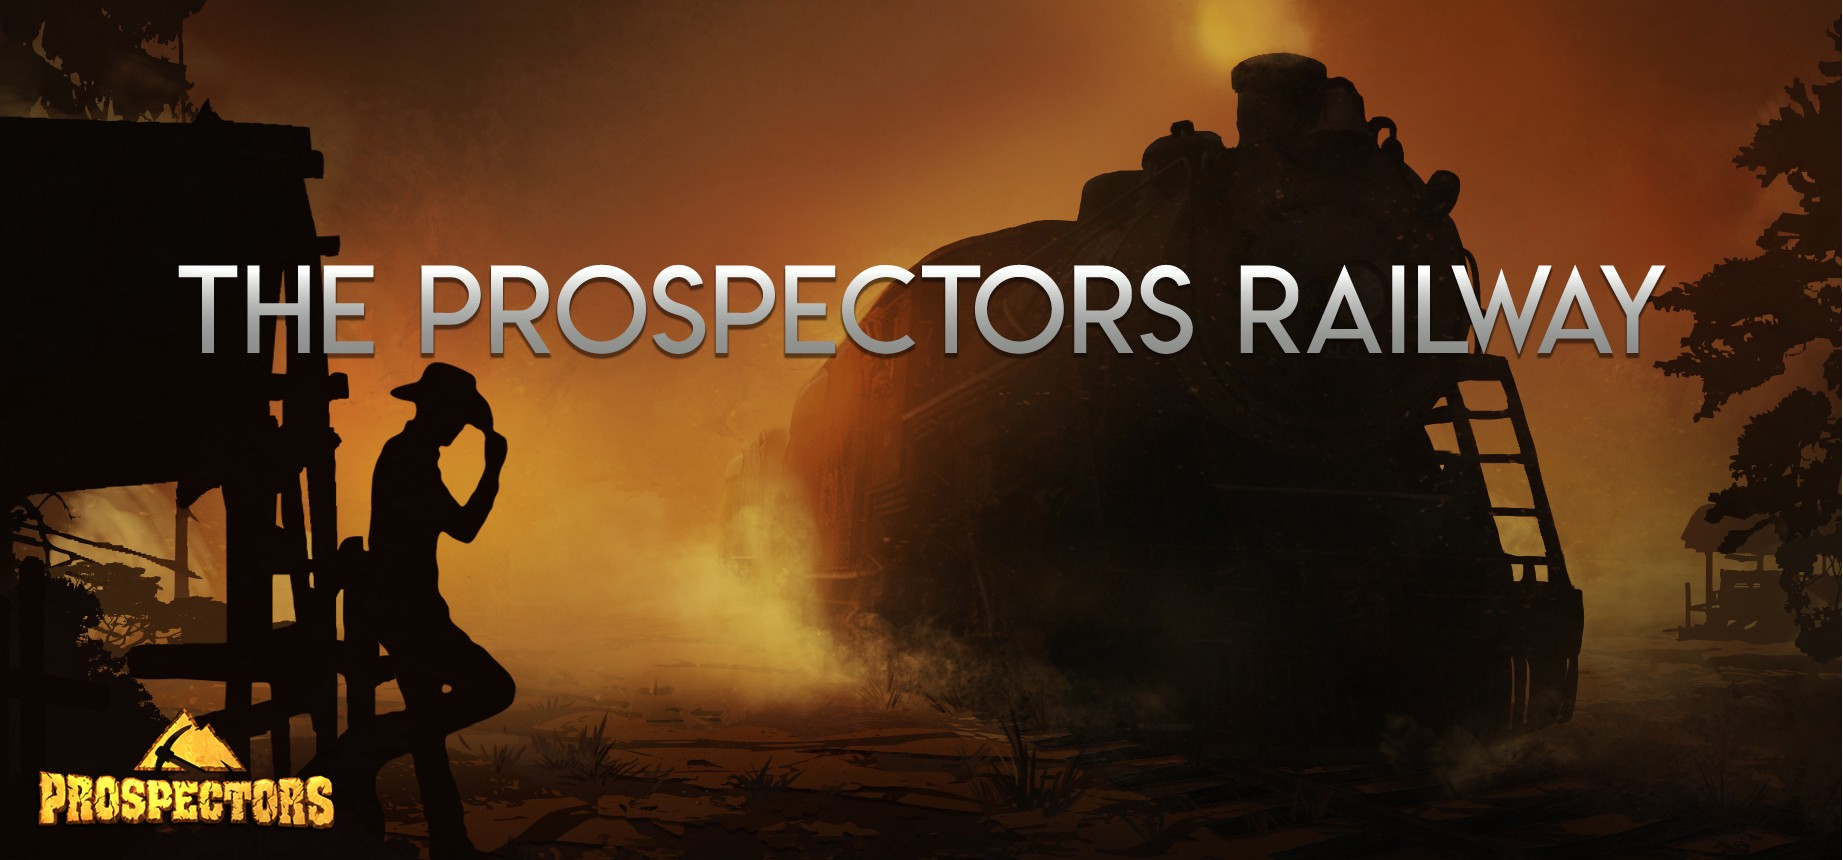 The Prospectors Railway #Massive Update for the Prospectors